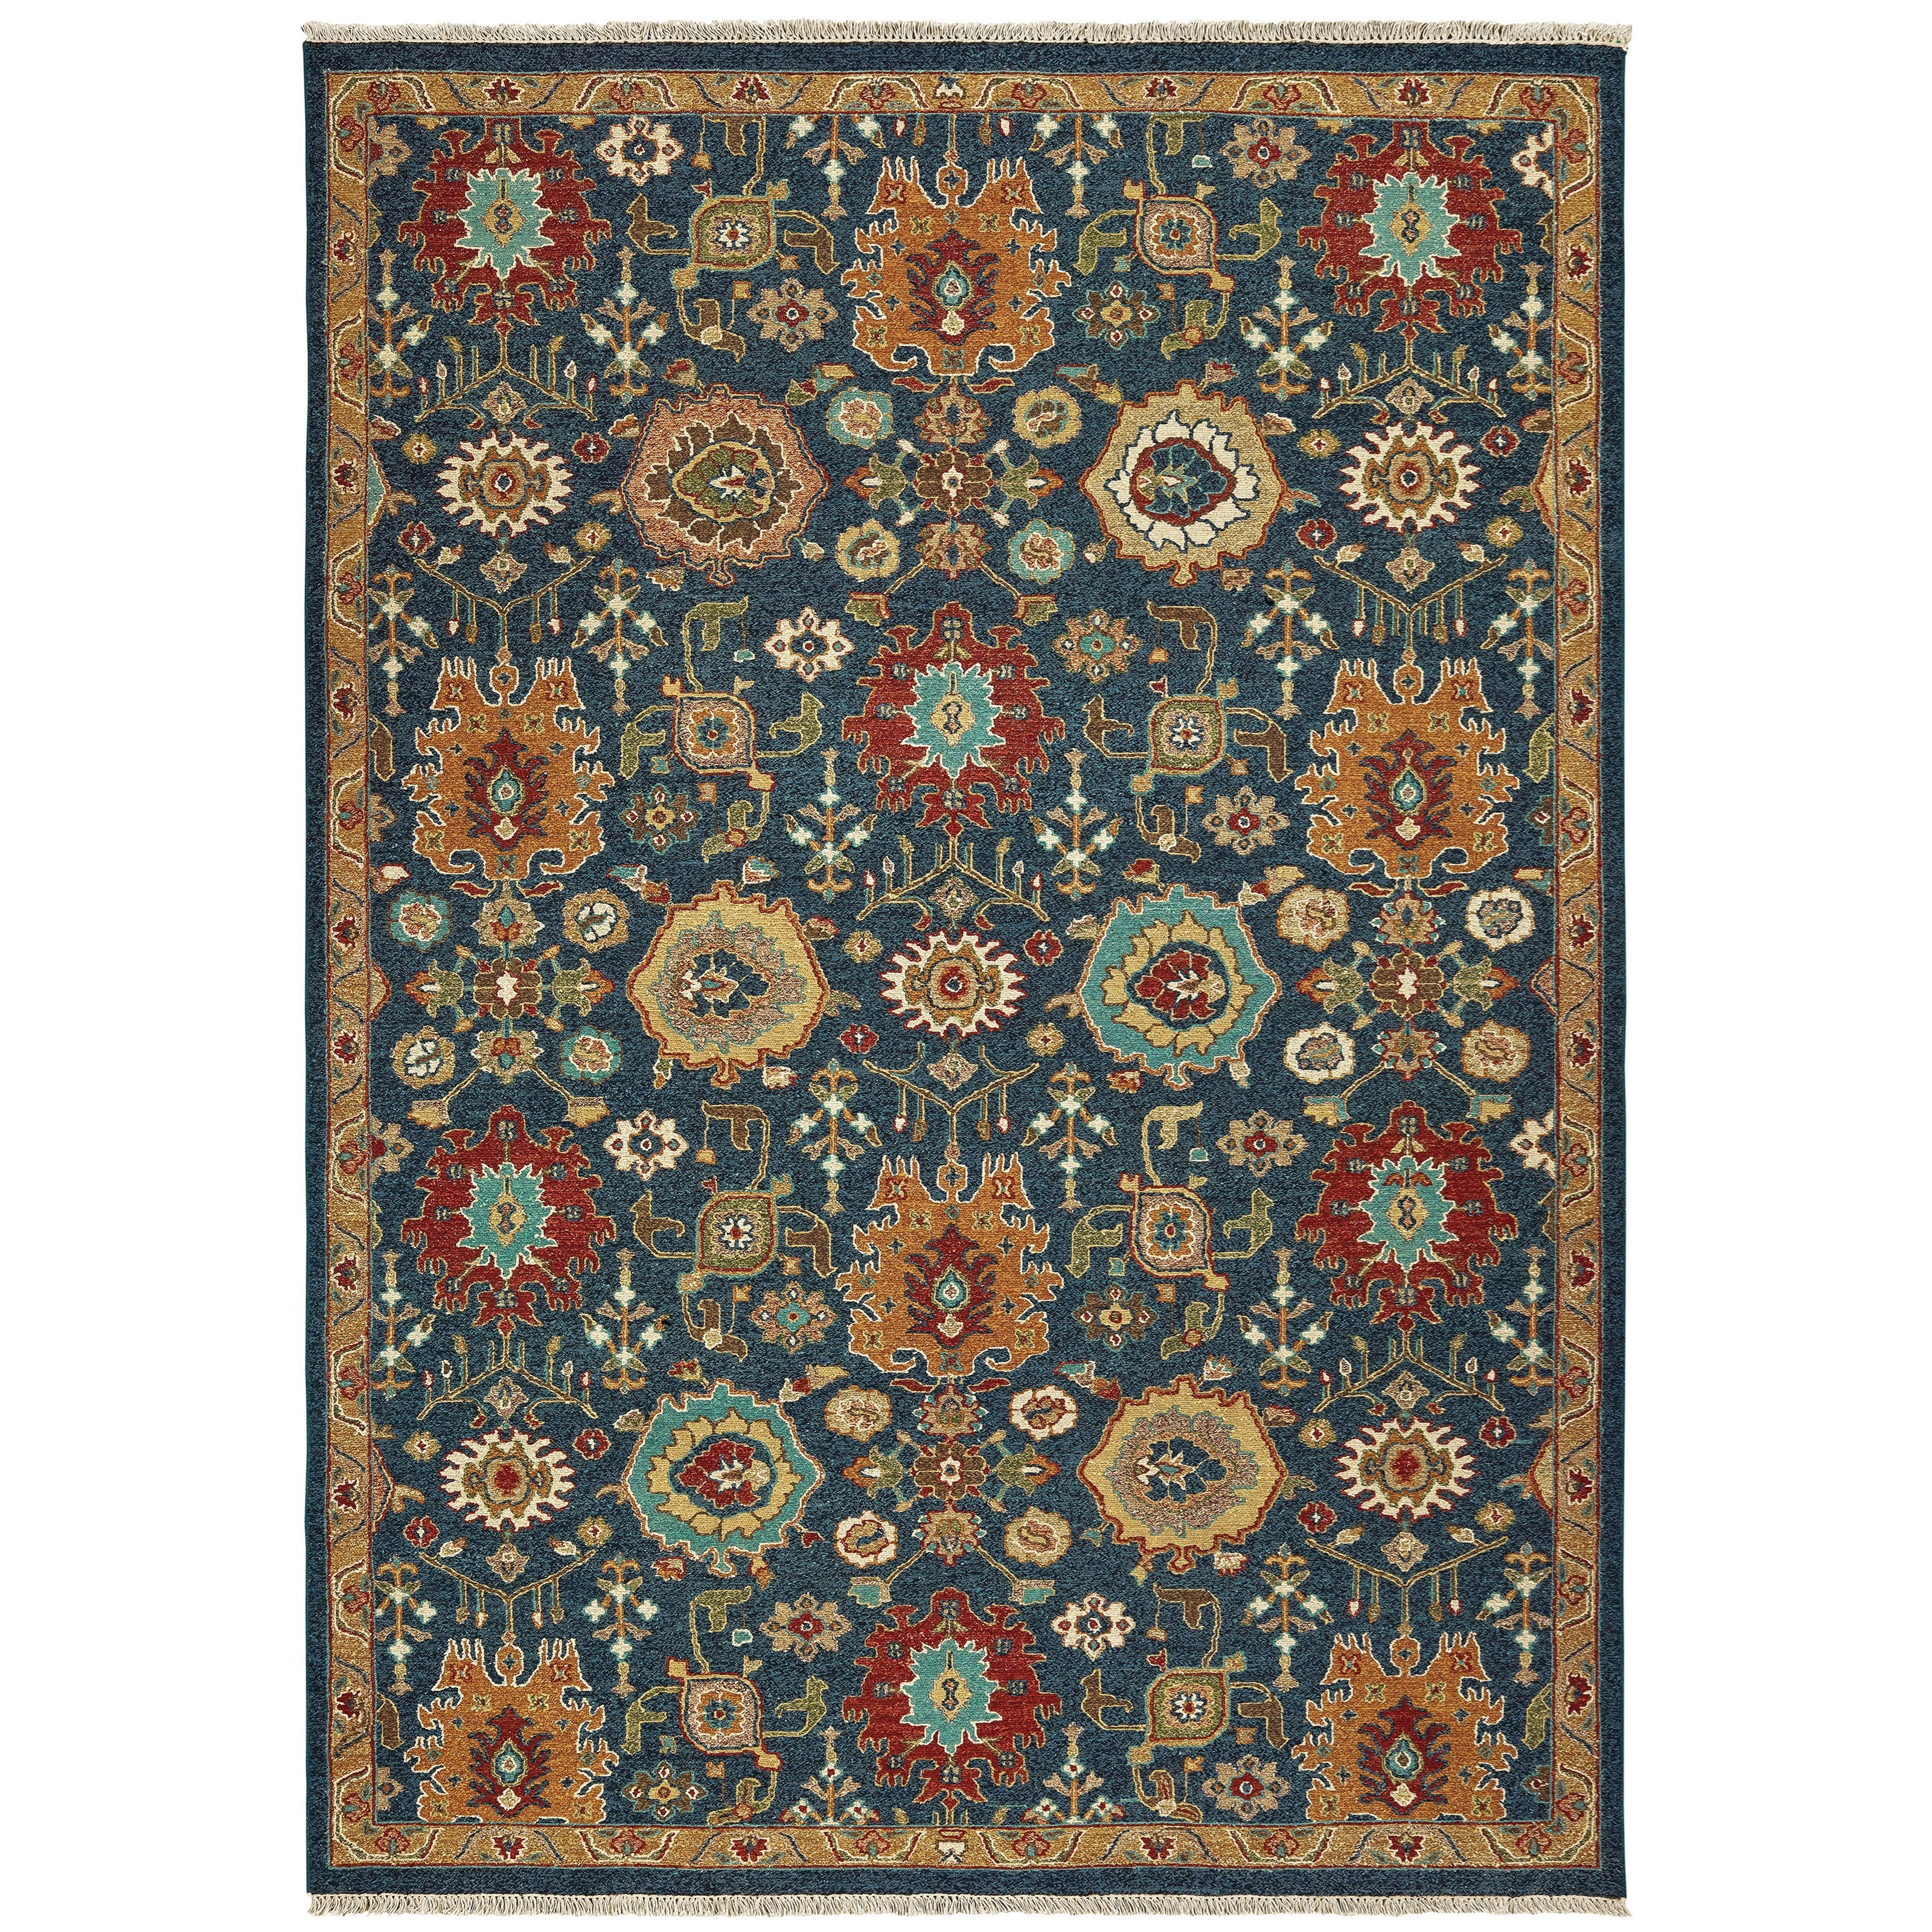 Angora 10' X 14' Rectangle Rug by Oriental Weavers at Steger's Furniture